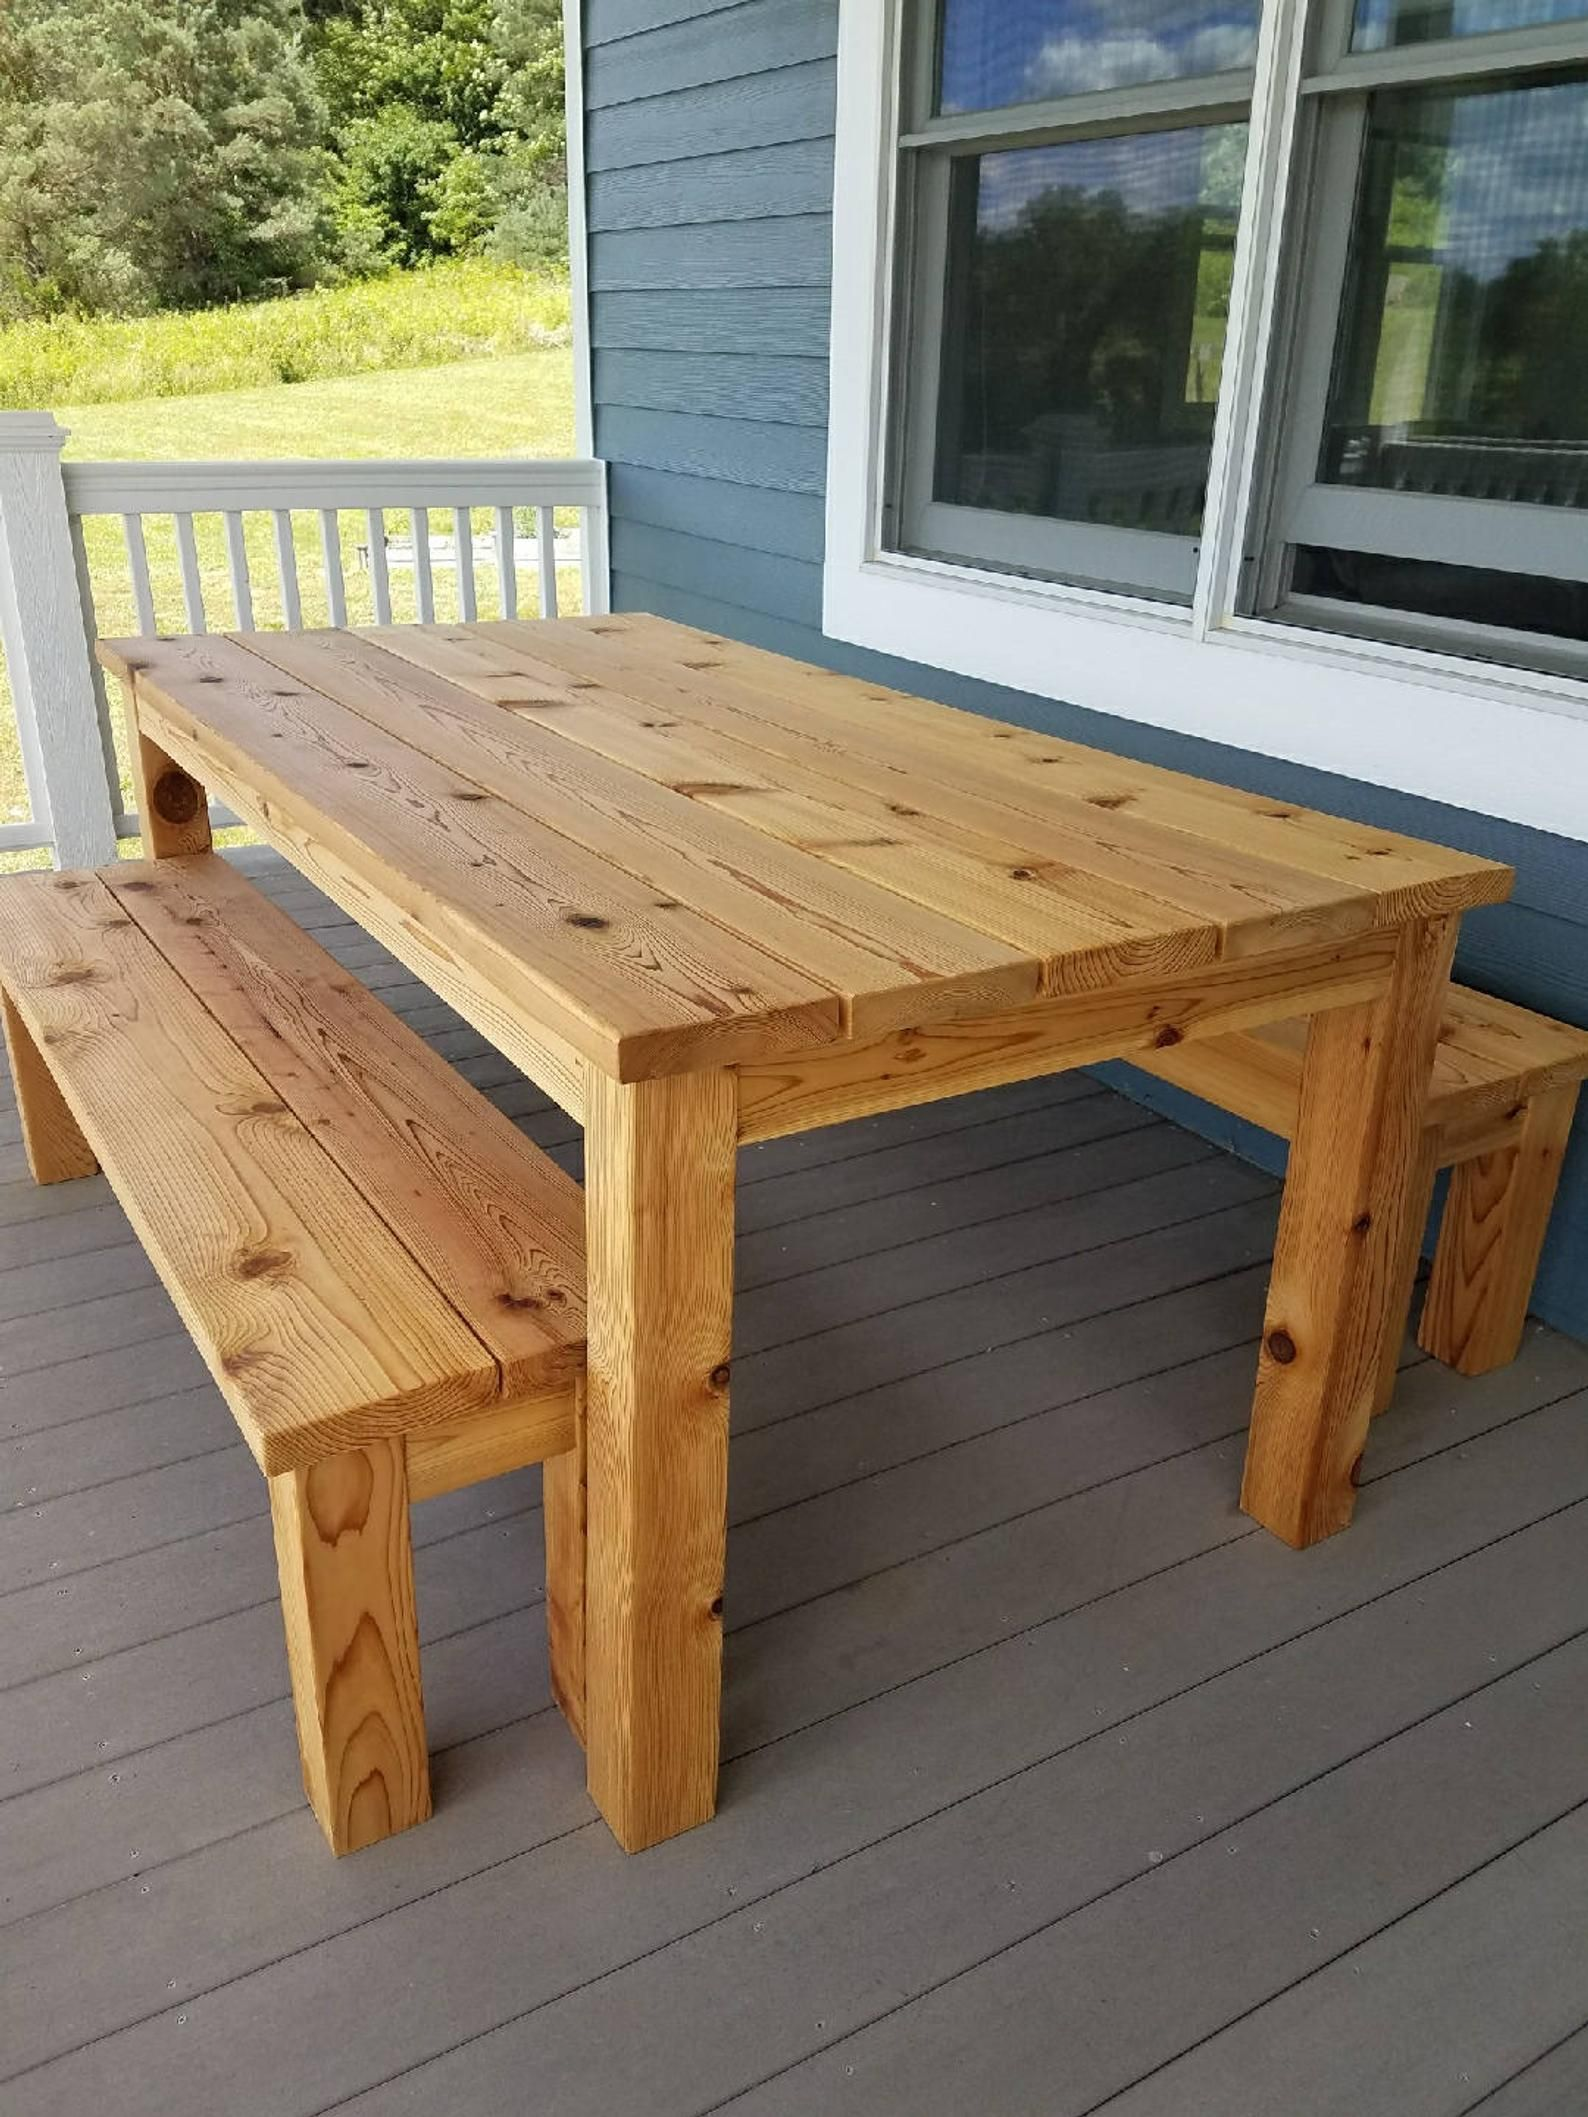 Outdoor Cedar Picnic Table Set Etsy Pallet Furniture Outdoor Outdoor Furniture Plans Woodworking Projects Furniture